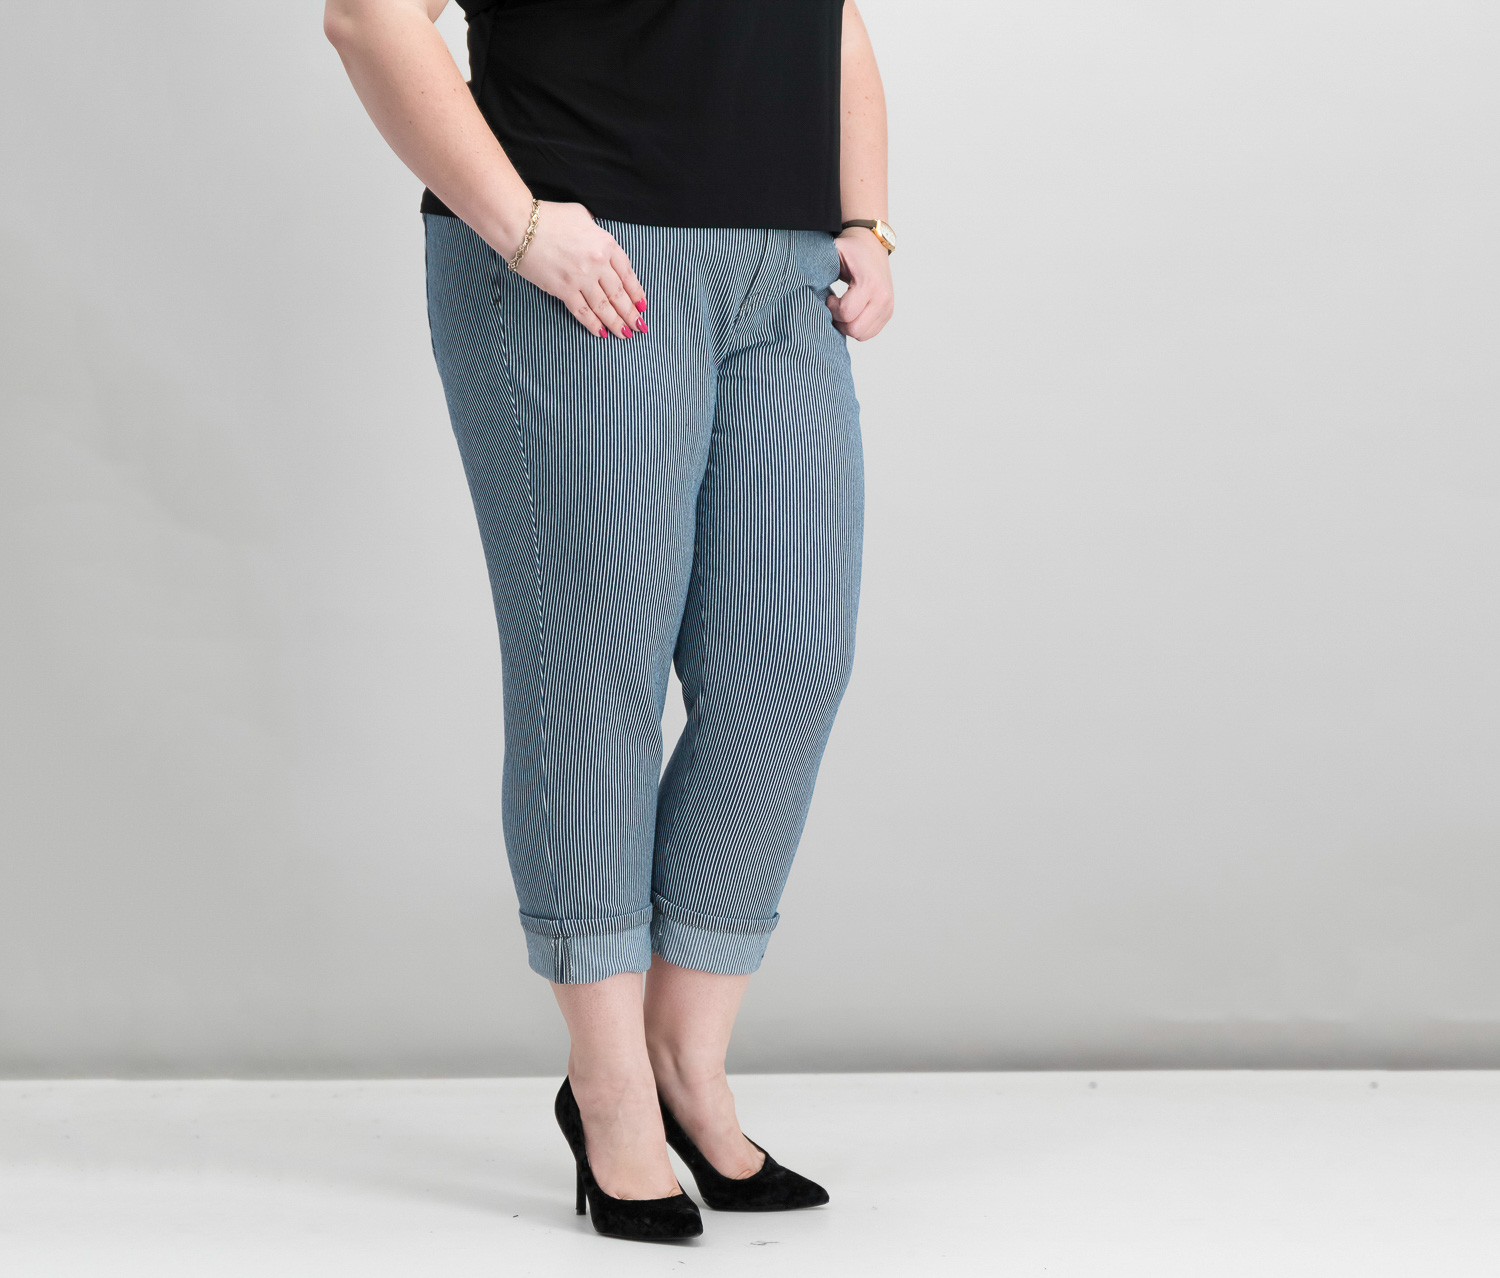 Plus Size Cuffed Capri Jeans, Railroad Stripe